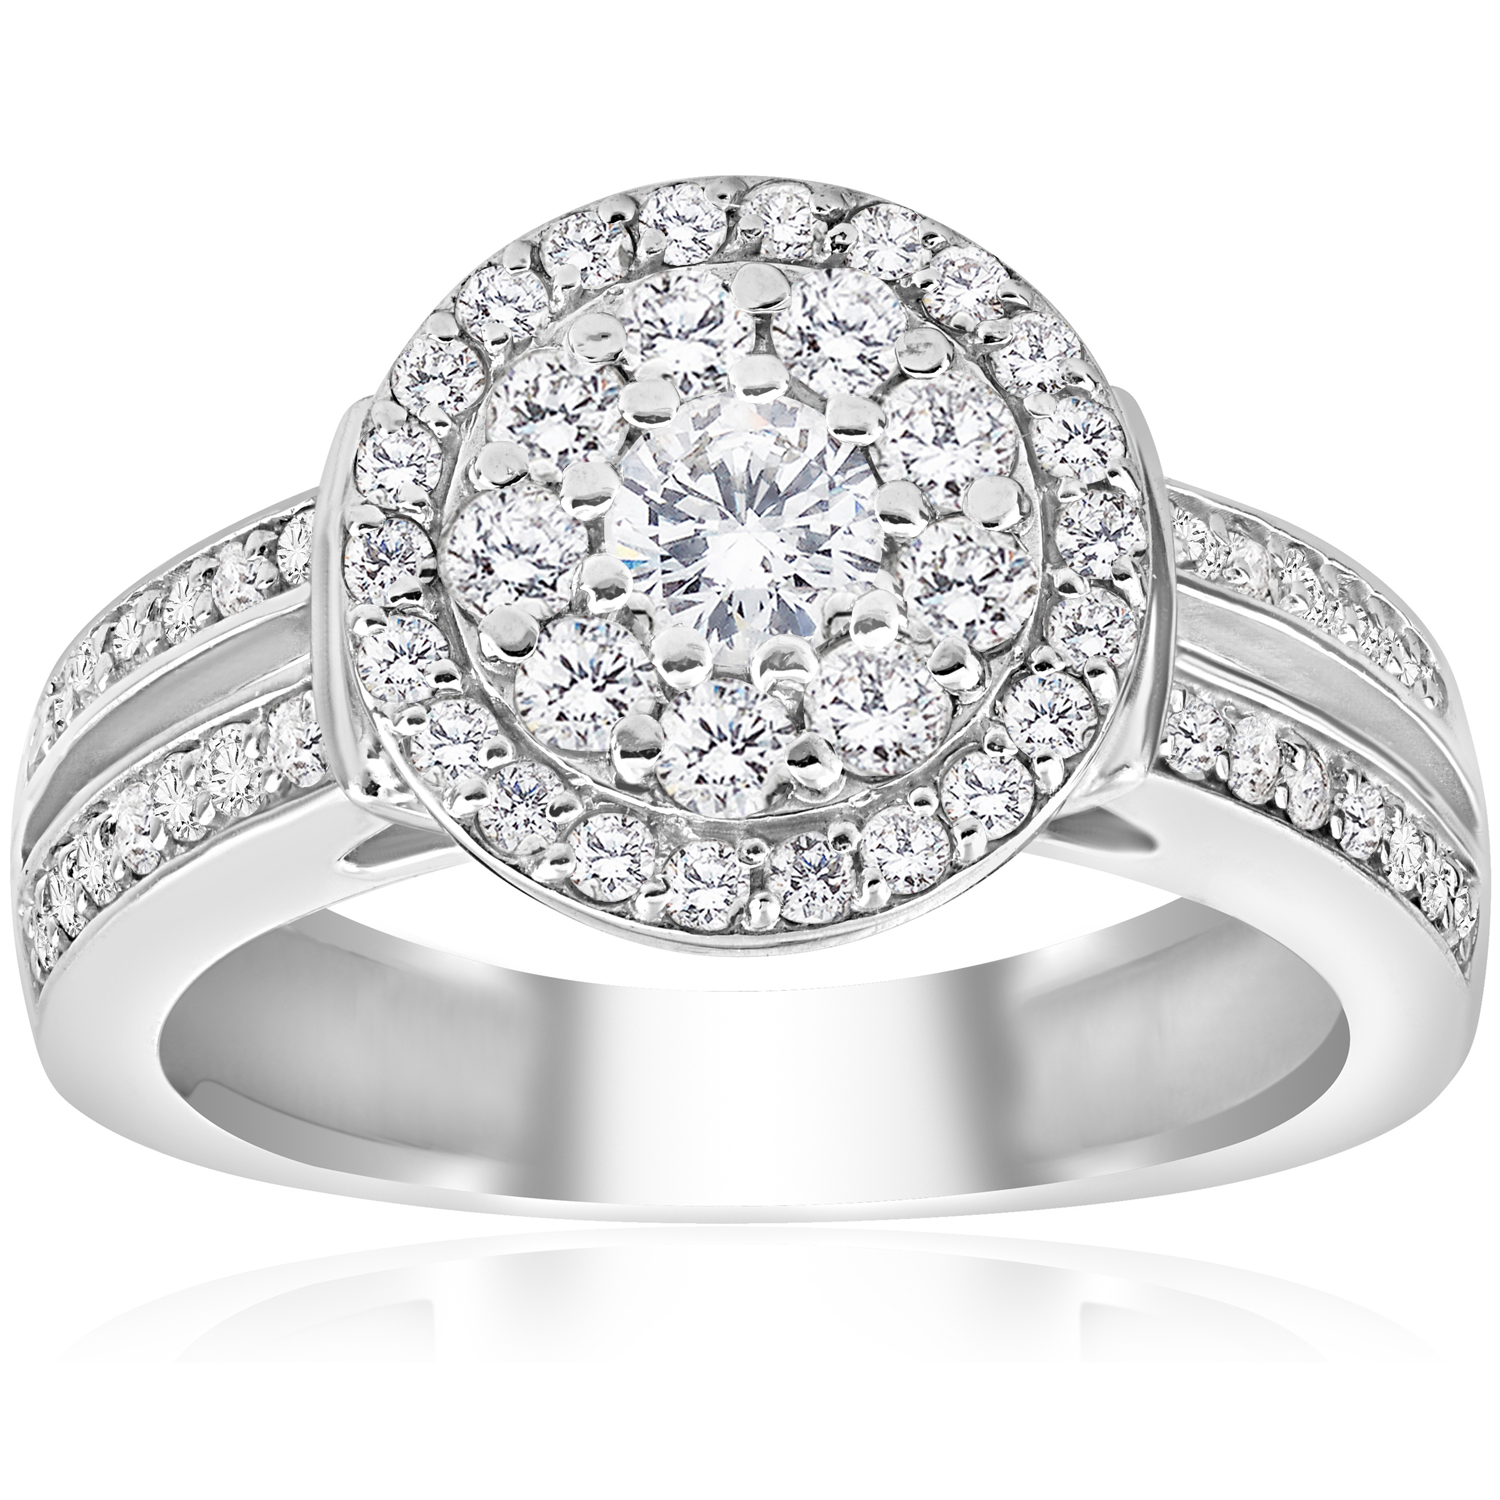 1 cttw diamond double halo engagement ring 10k white gold. Black Bedroom Furniture Sets. Home Design Ideas